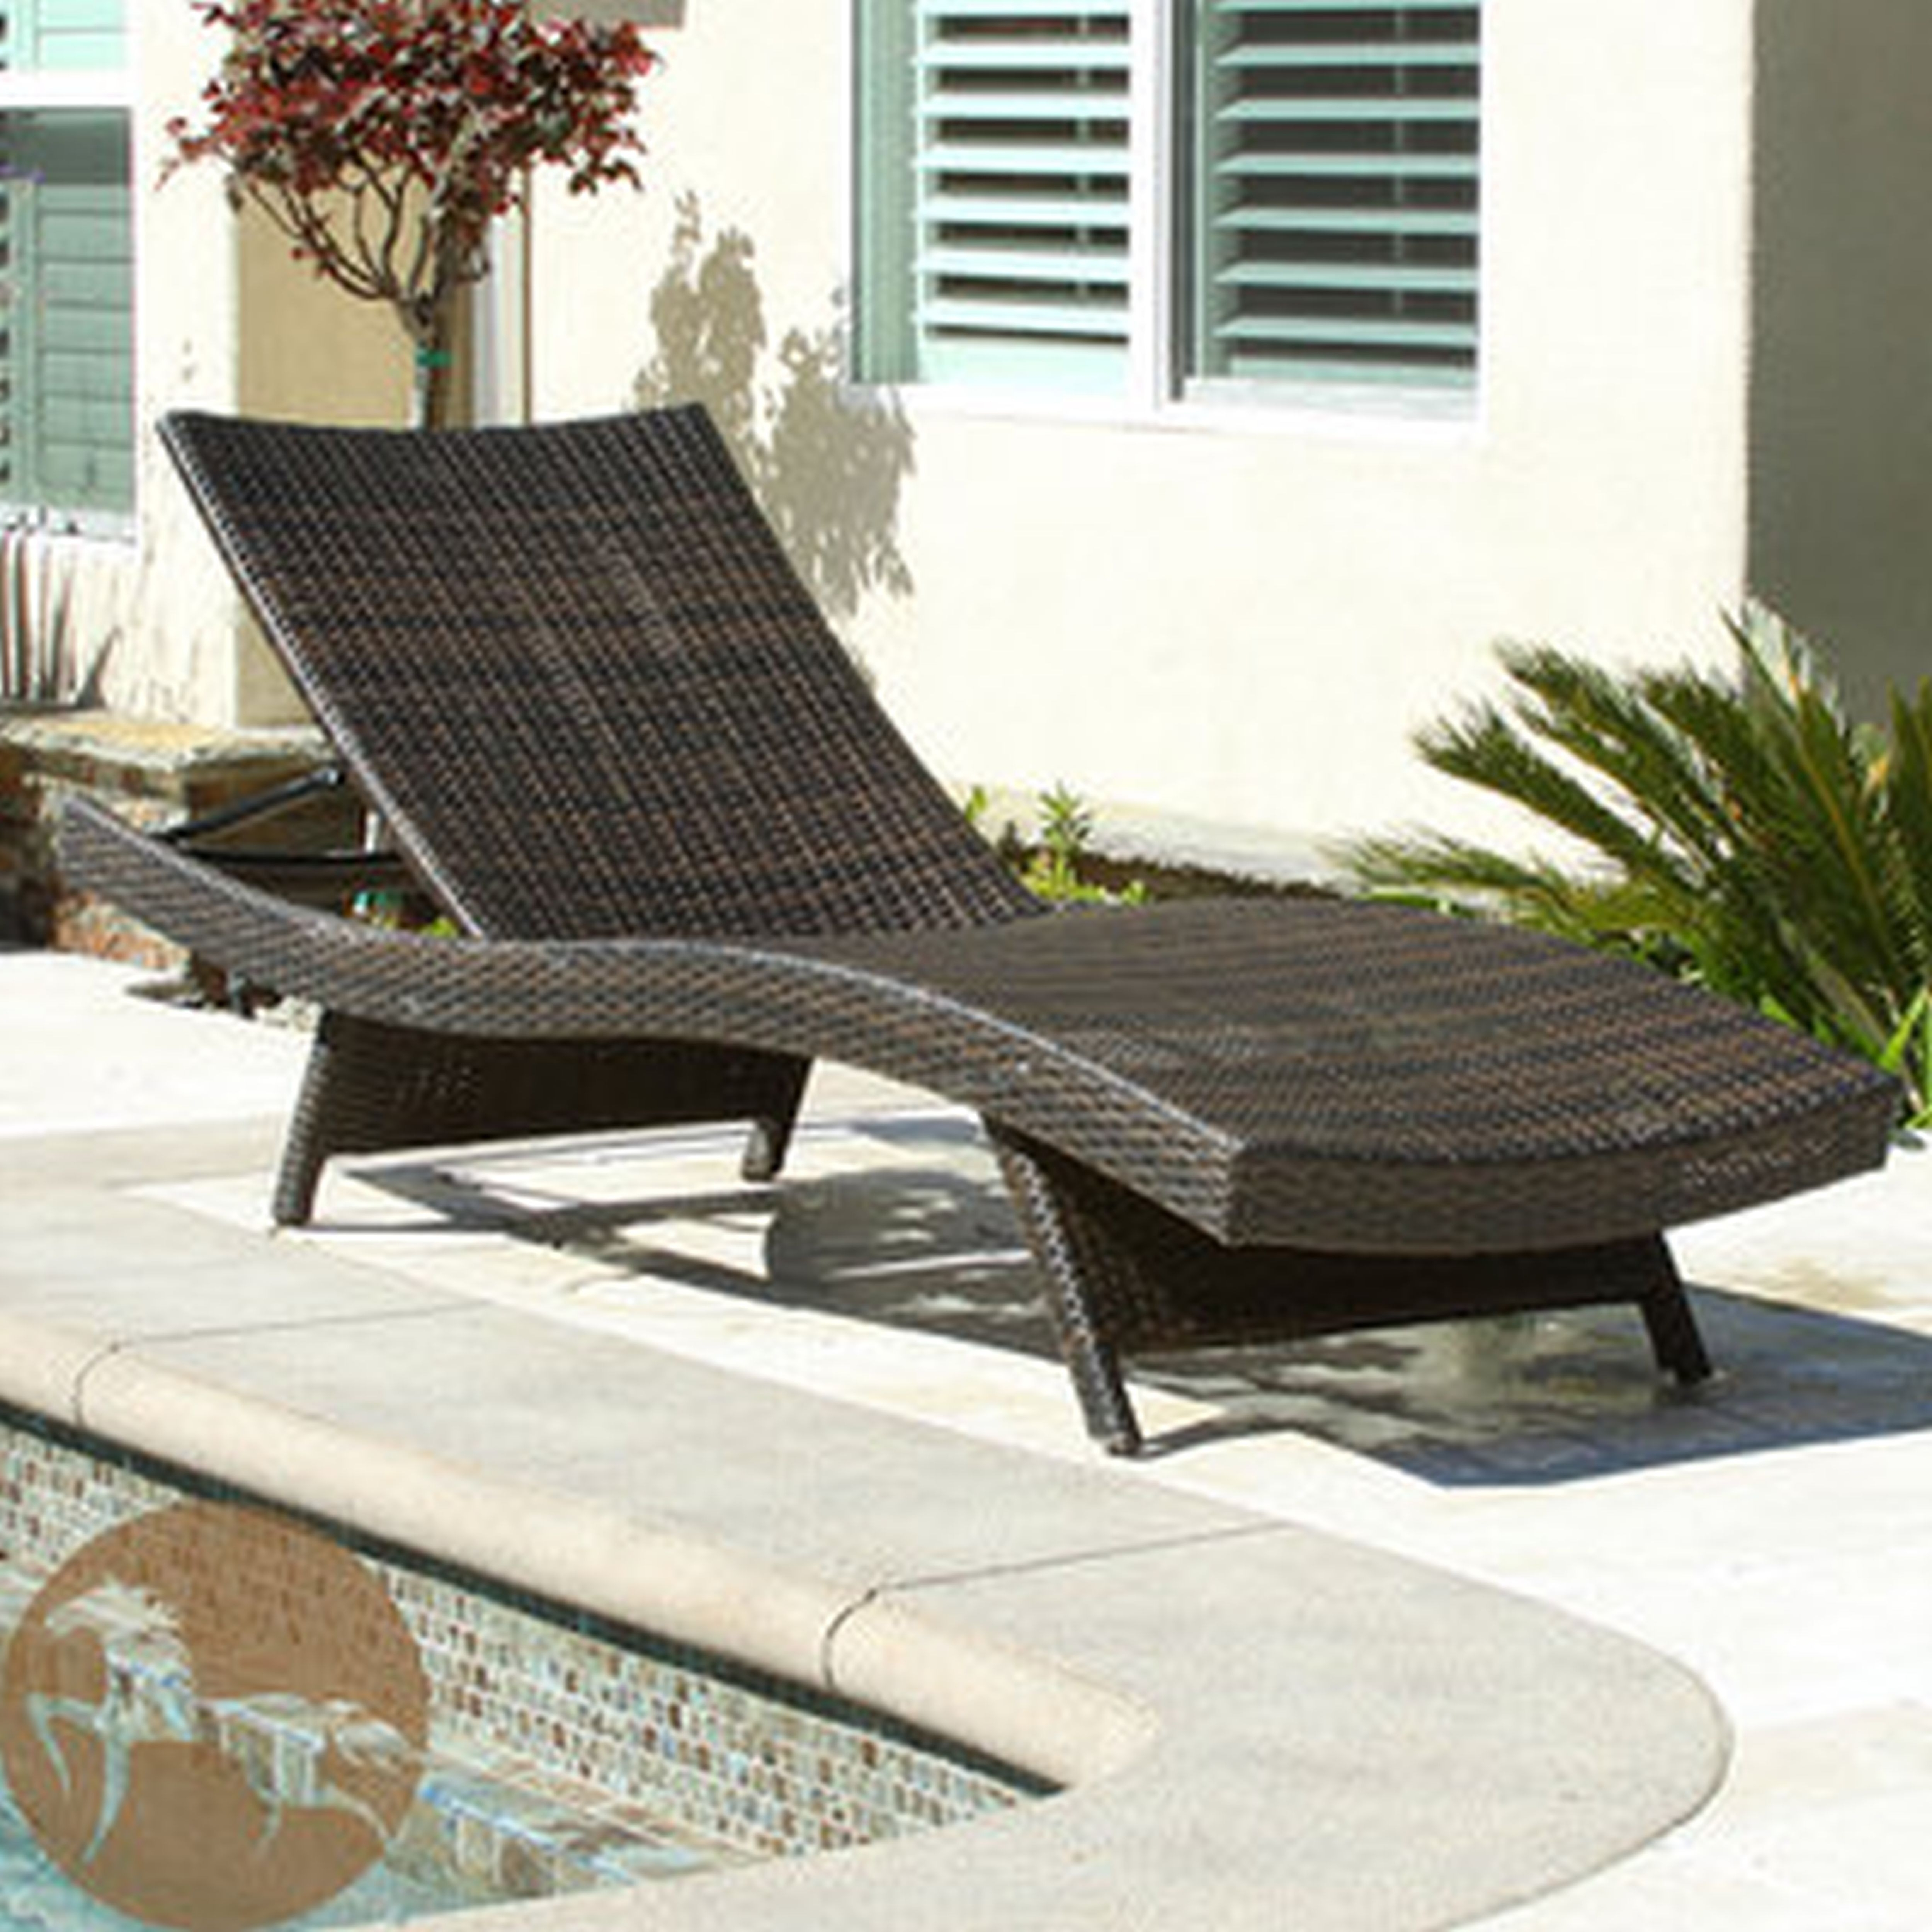 Lounge Chair : Outdoor Chairs Patio Chaise Lounge Outdoor Lounge Within Most Popular Pool Chaise Lounges (View 5 of 15)